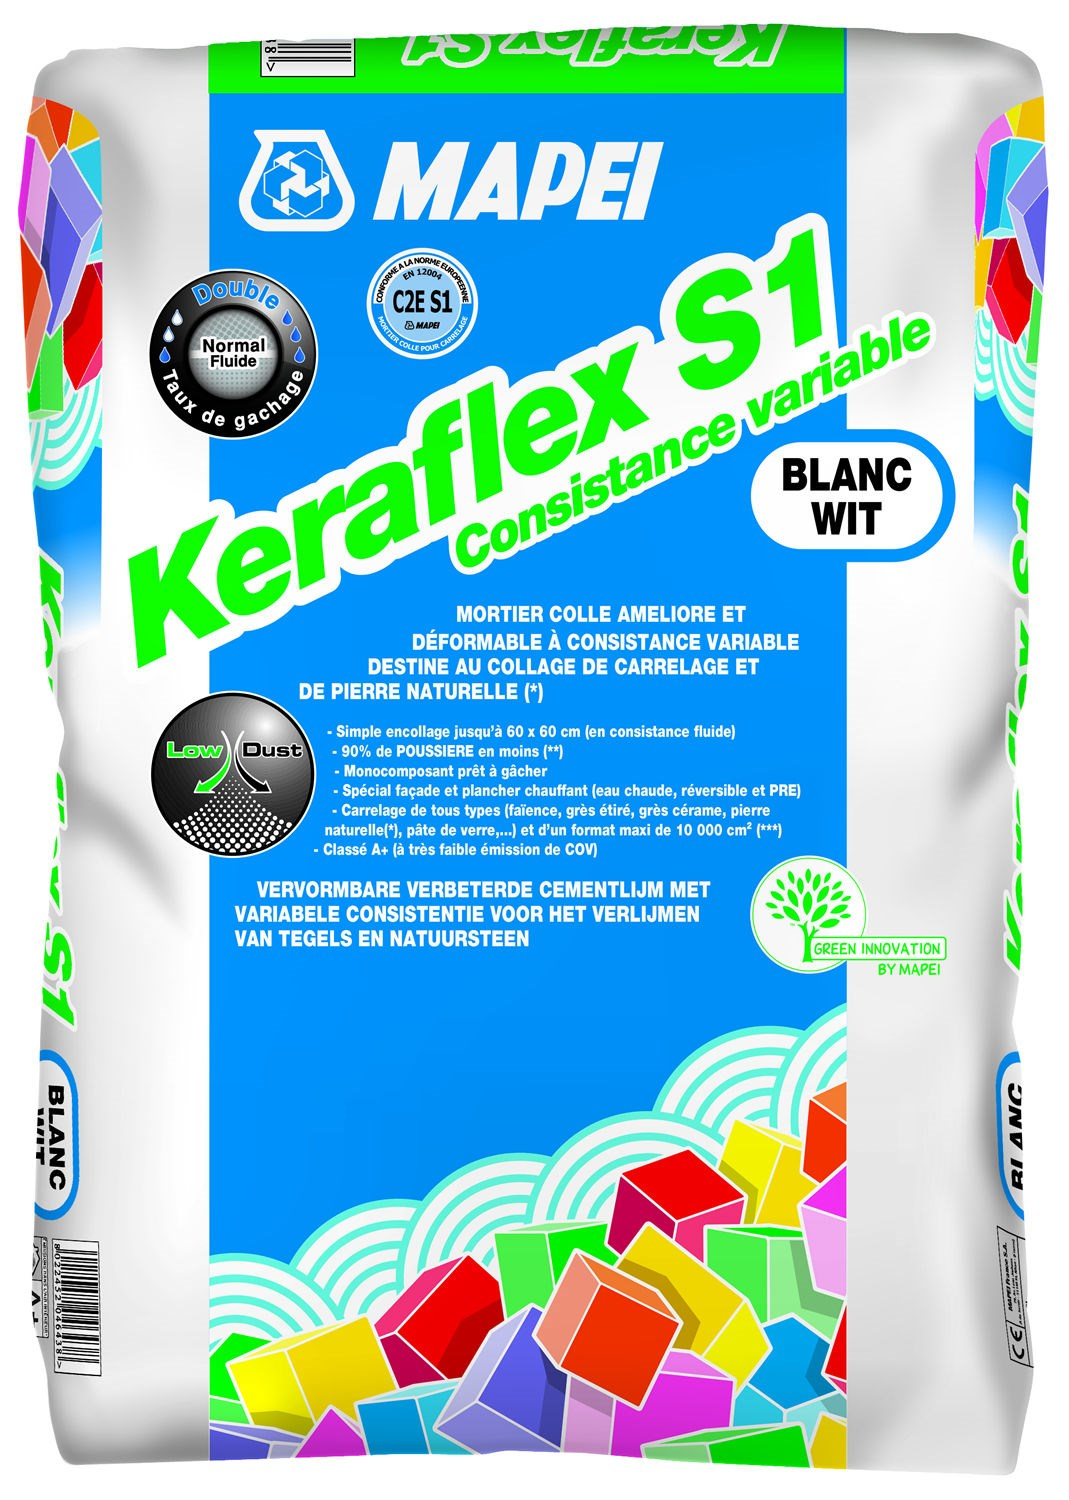 Mortier colle pour carrelage c2 s1 eg keraflex s1 mapei for Colle carrelage c2